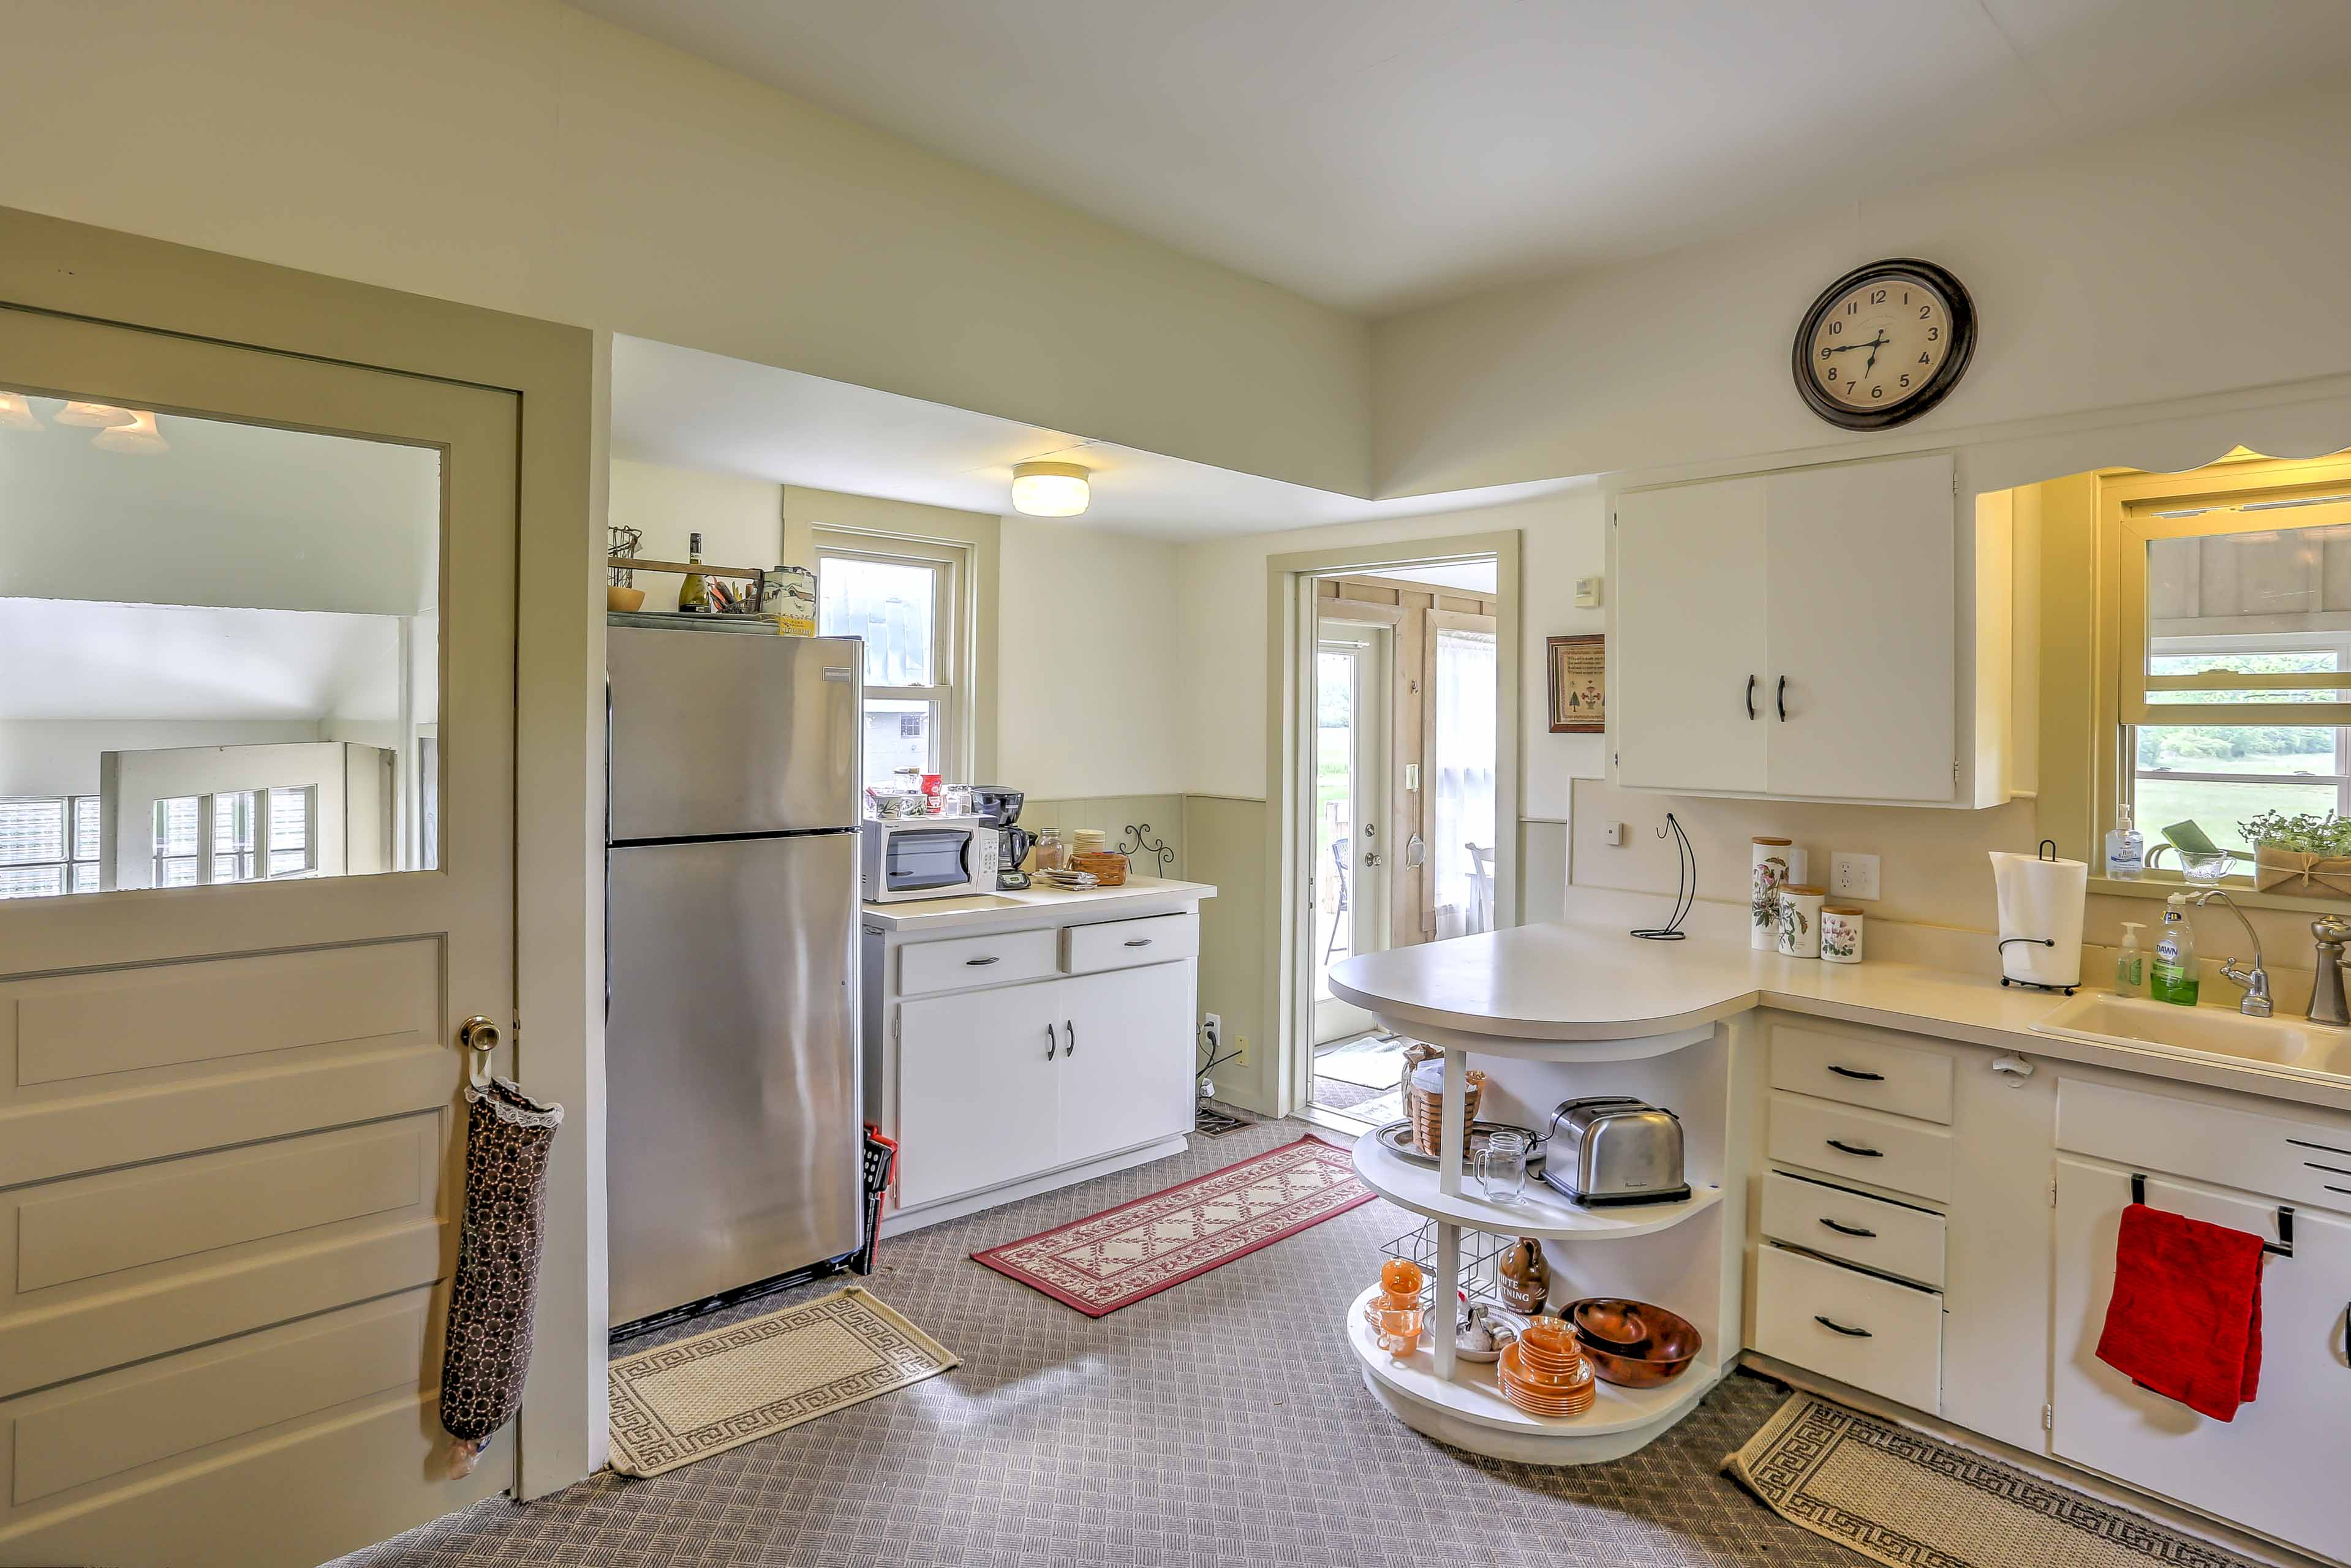 The kitchen is currently being renovated, but still fully functional for use.